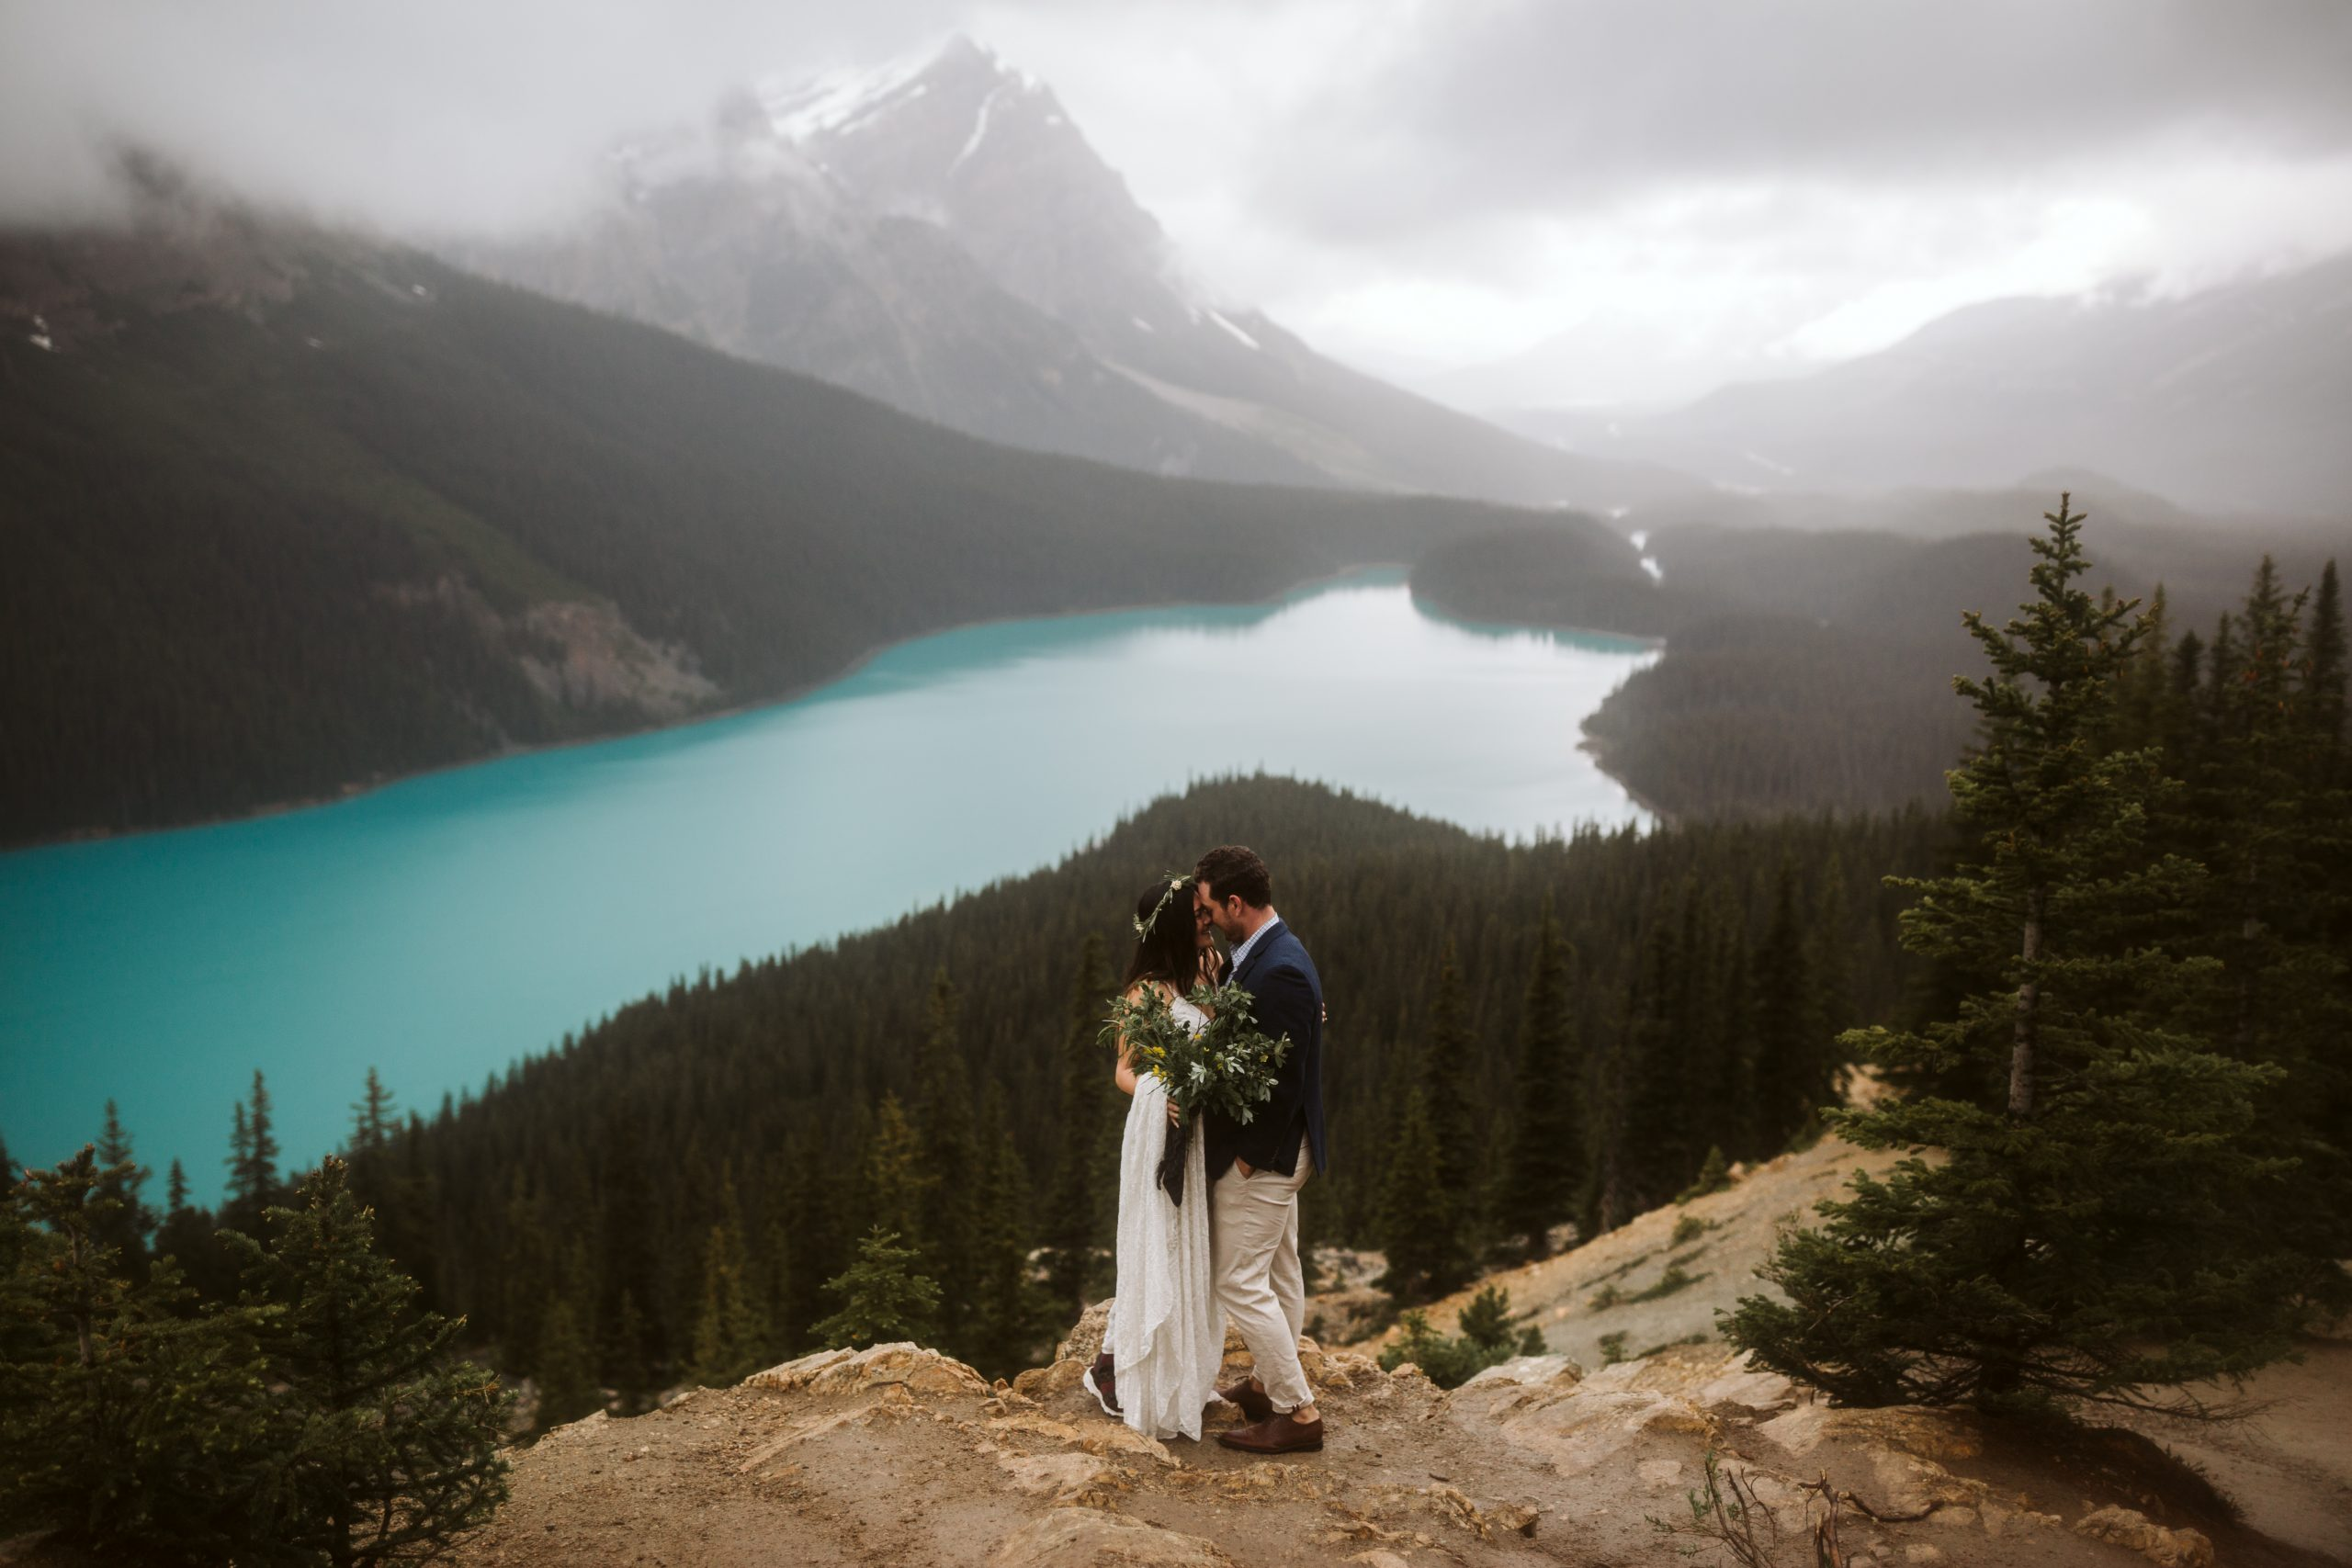 A couple snuggling on the rock bed with Peyto Lake in the background in Banff National Park.